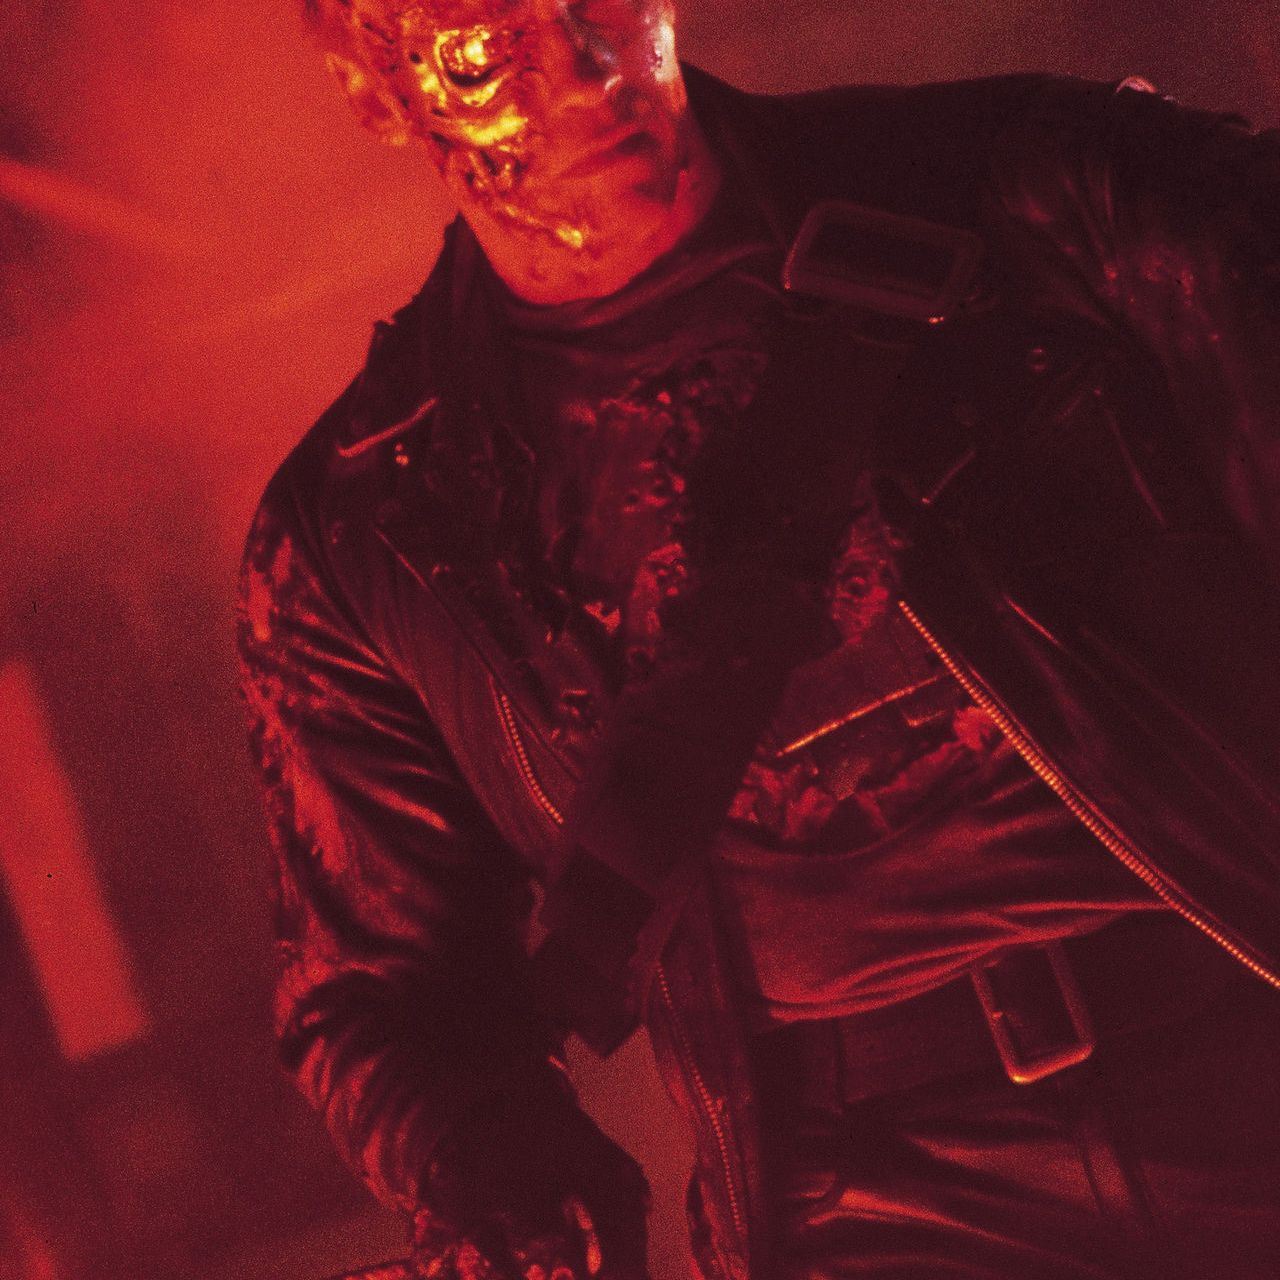 T2 Judgment Day Battle Damaged T-800